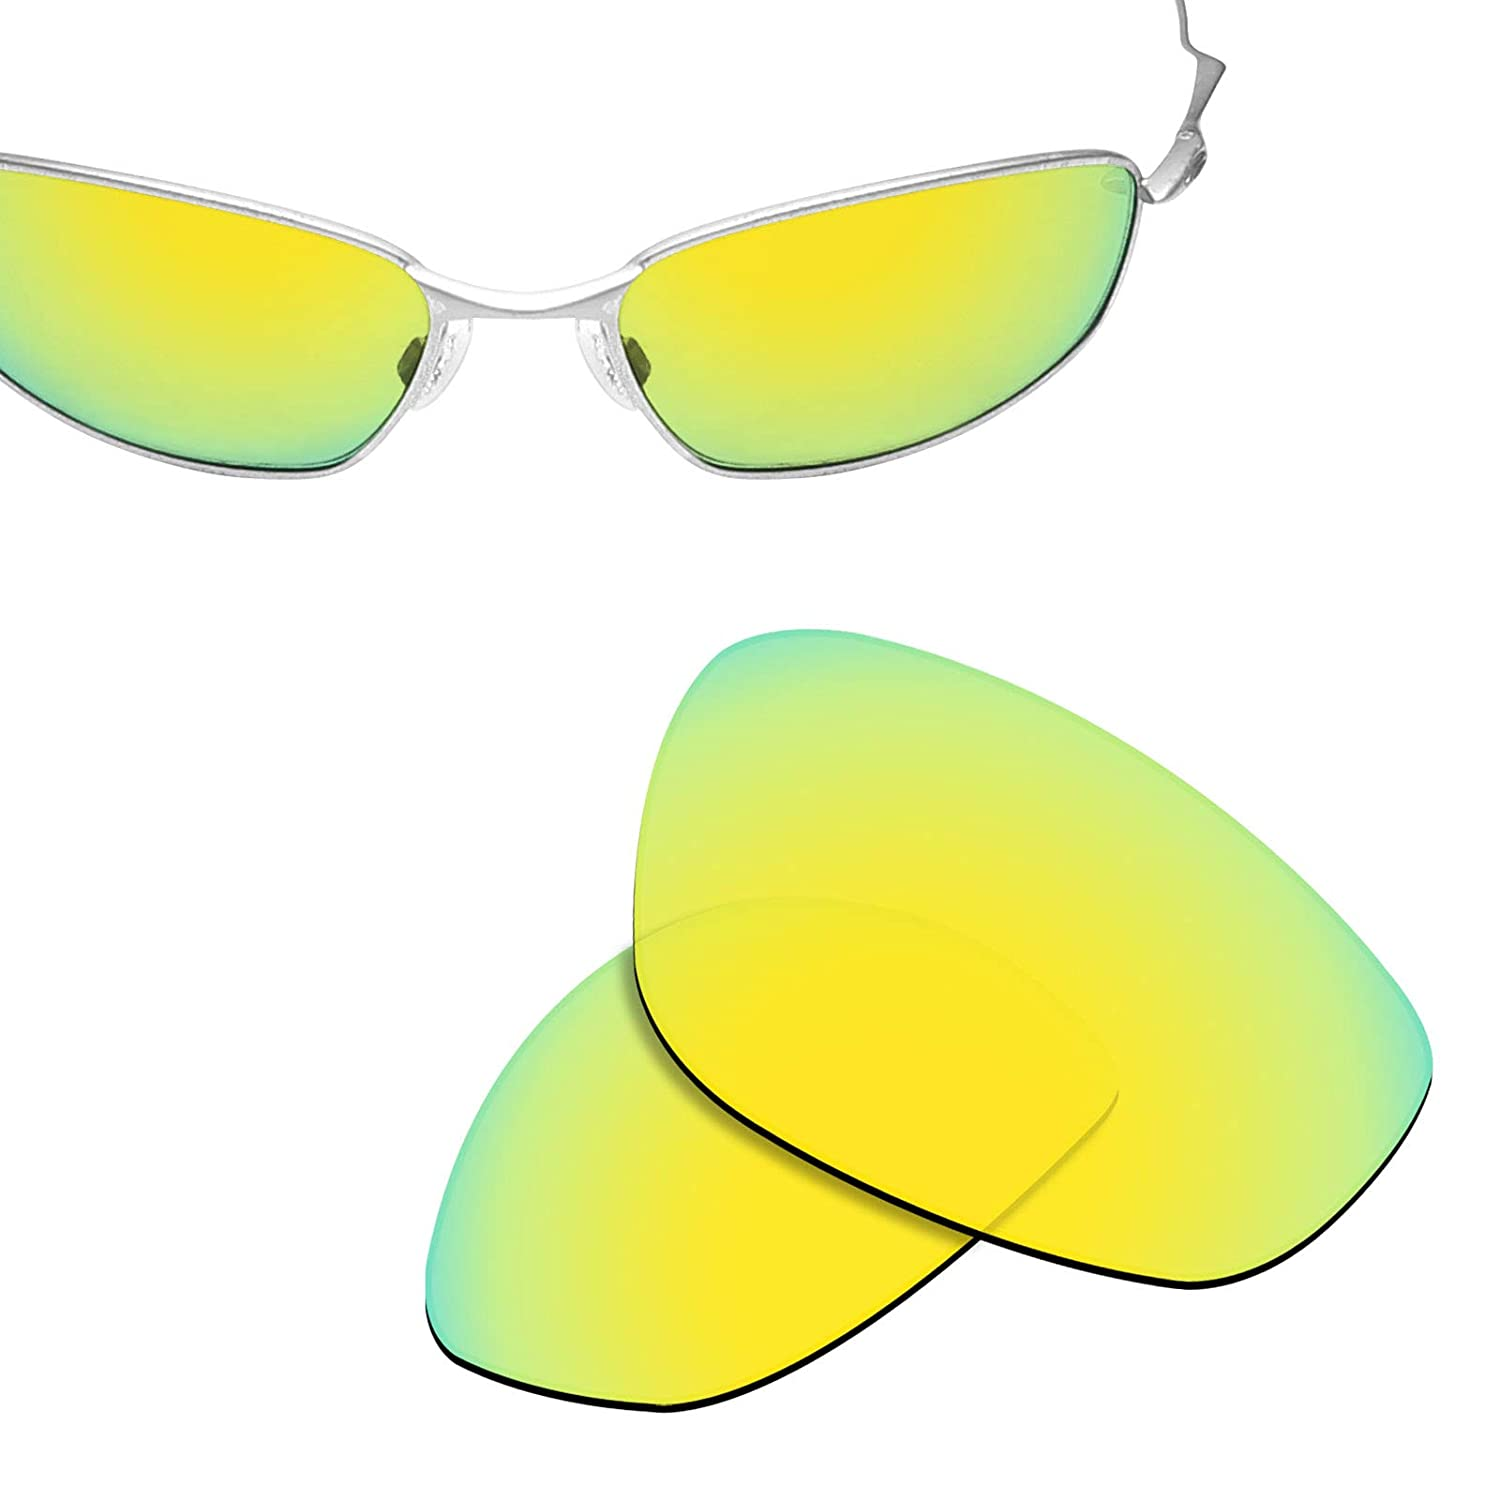 60225833c4d Amazon.com  New 1.8mm Thick UV400 Replacement Lenses for Oakley Whisker -  Options  Clothing